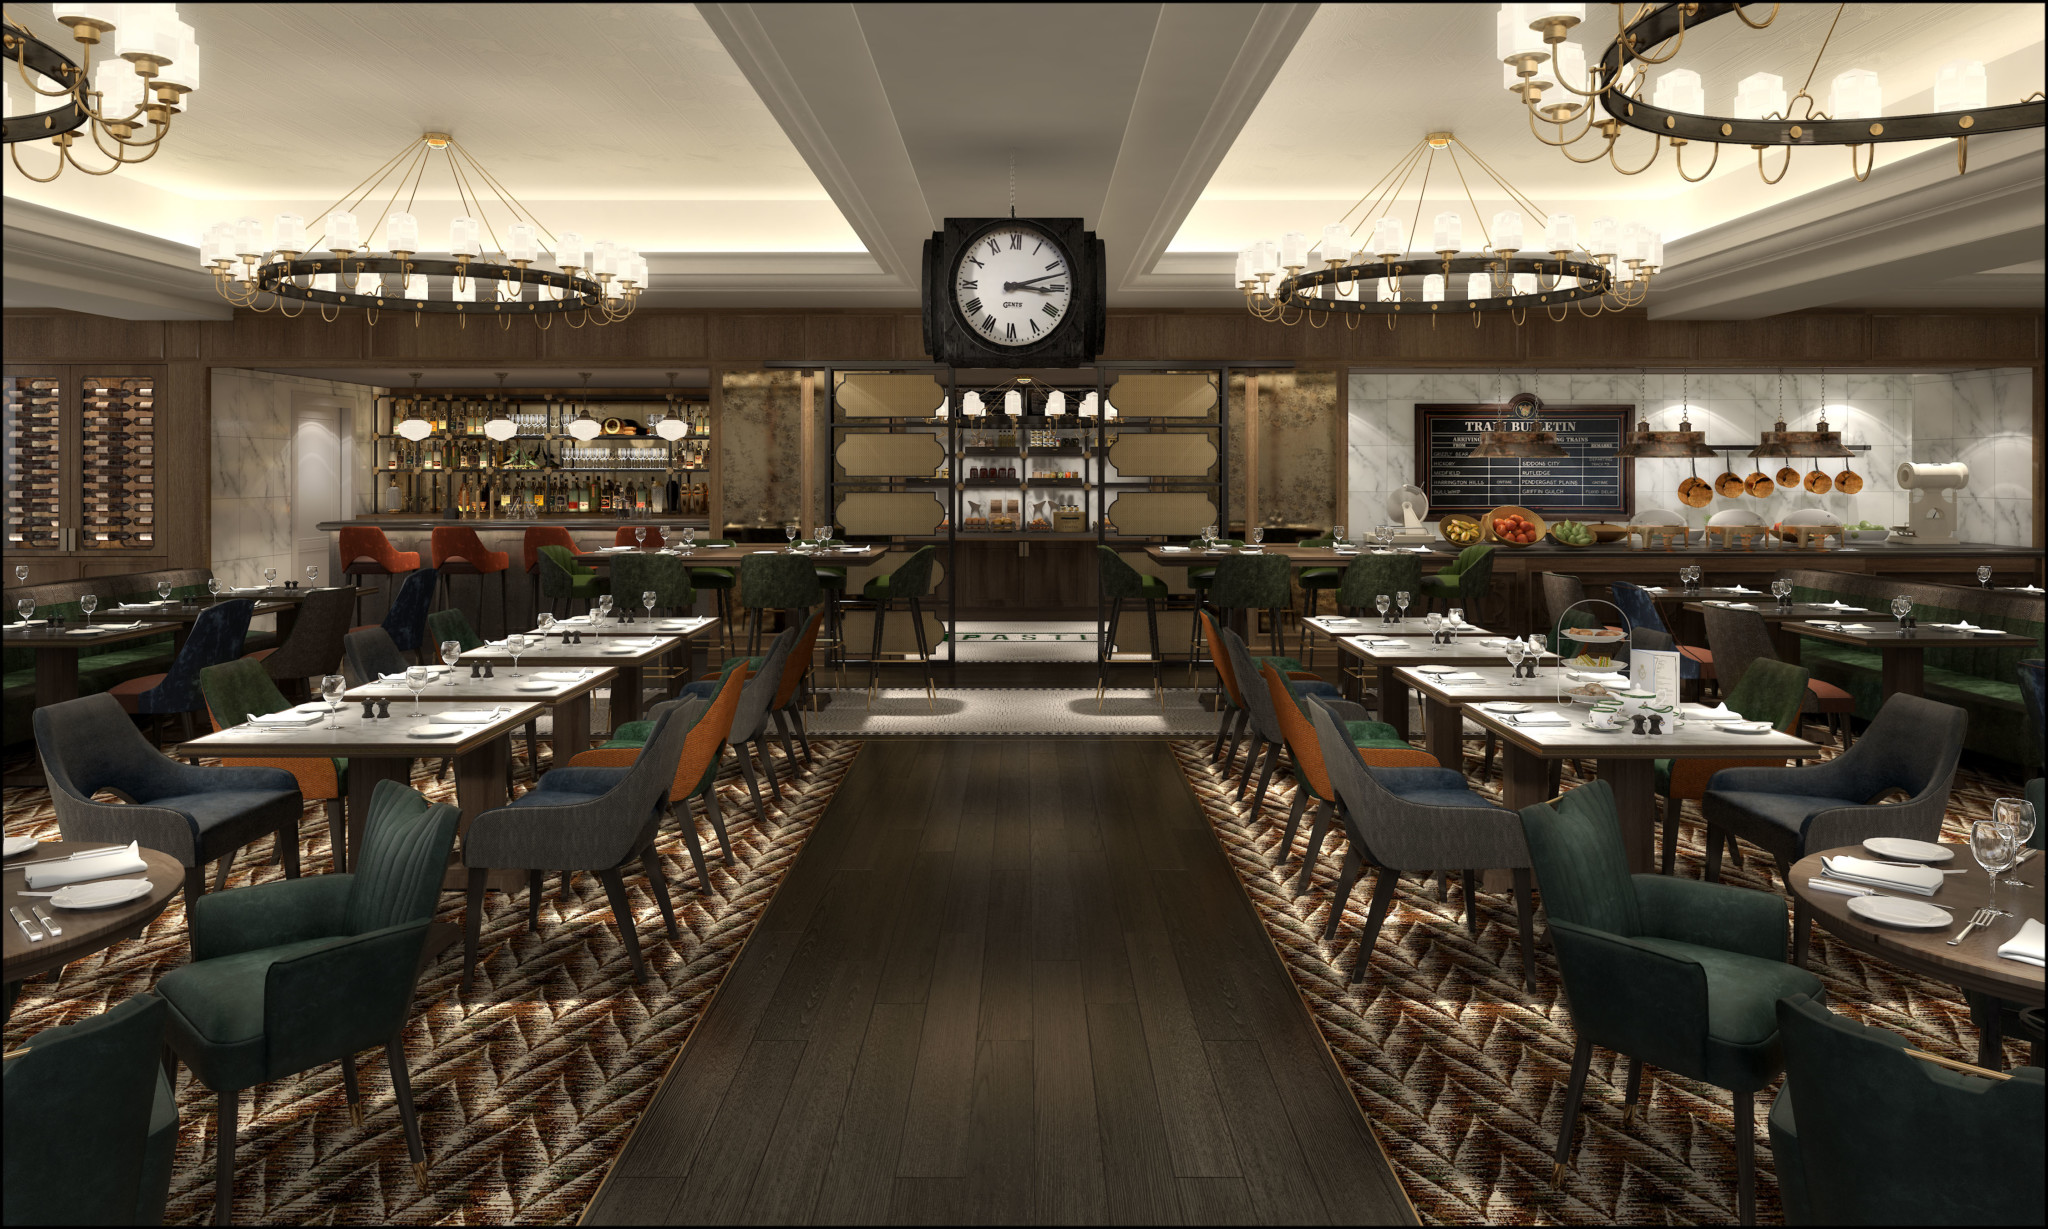 The Rise terrace brasserie and bar (opening June 2017)